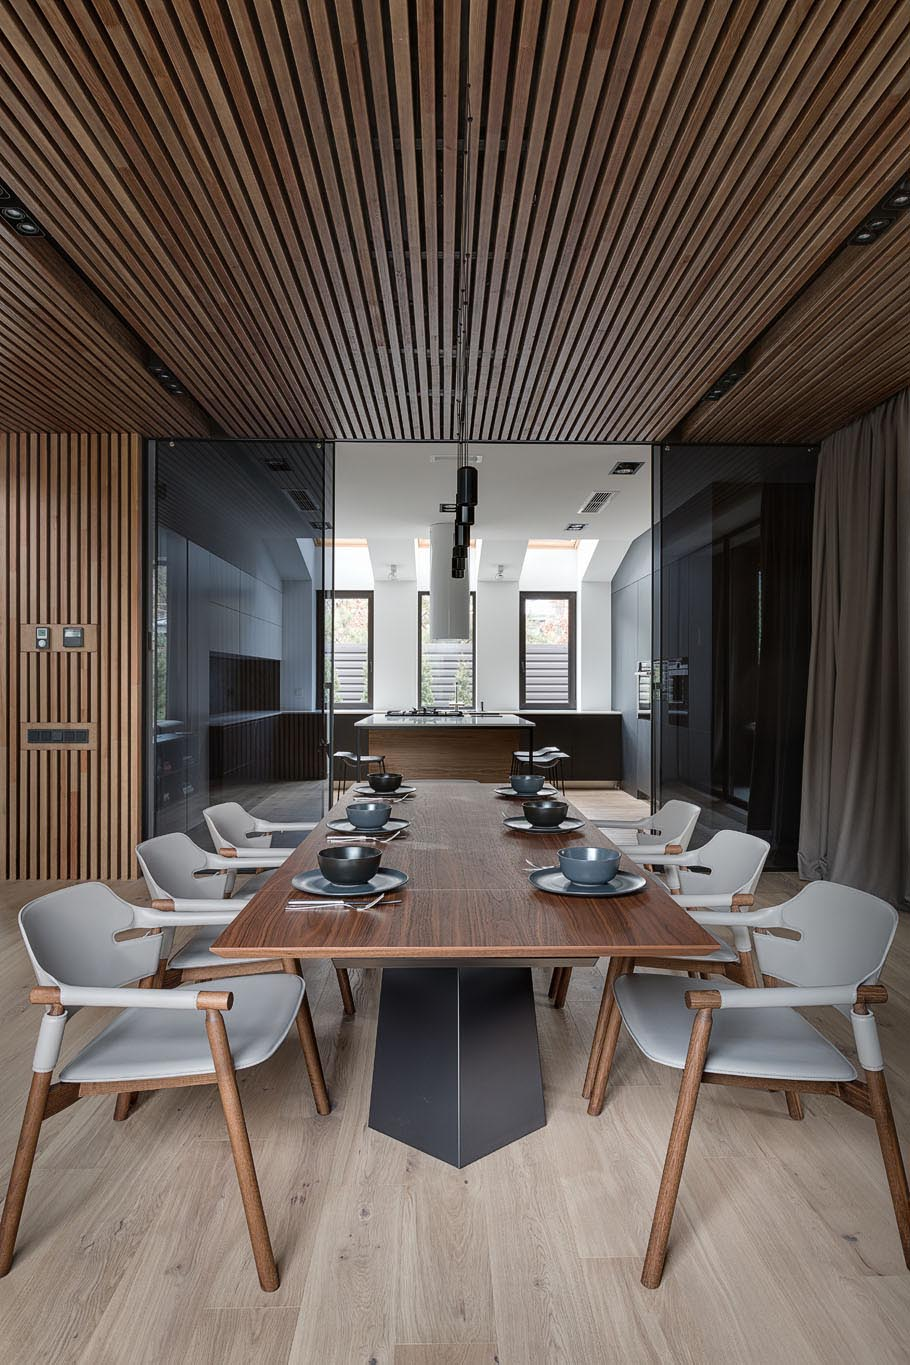 This open concept dining room has a wood slat ceiling, a wood dining table, and dining chairs that match the neutral color palette.